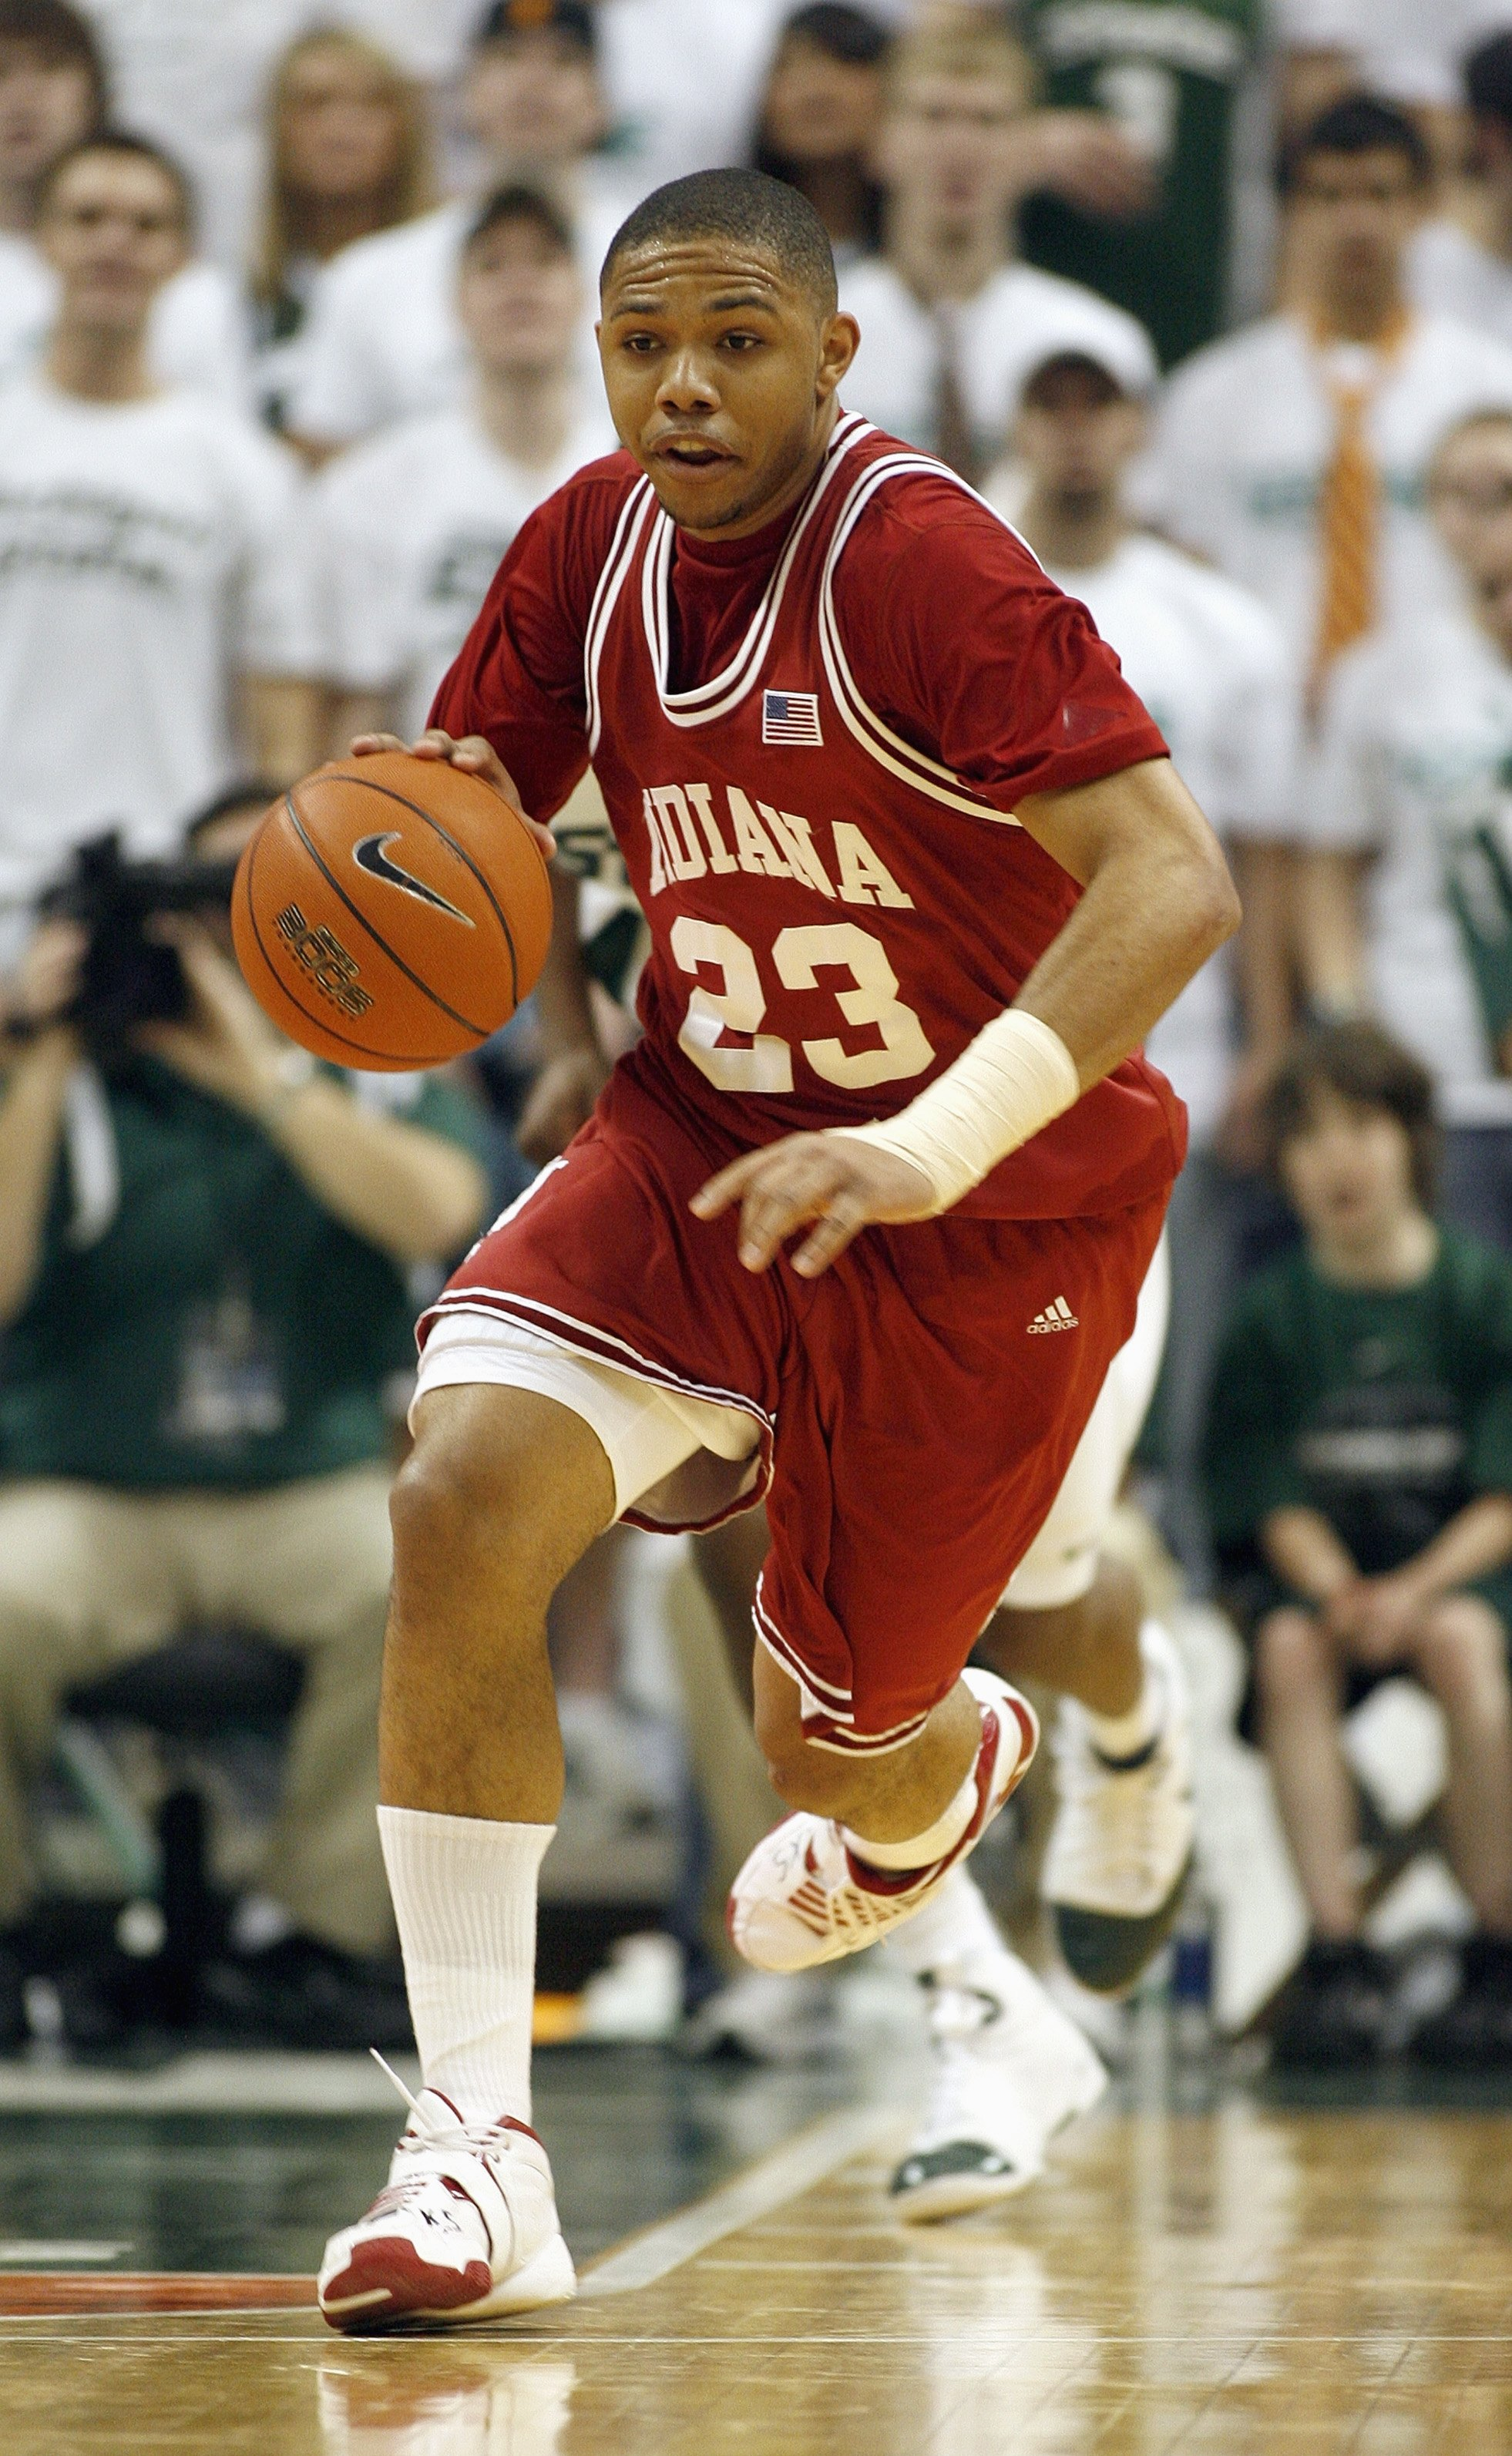 EAST LANSING, MI - MARCH 02: Eric Gordon #23 of the Indiana Hoosiers drives the ball against the Michigan State Spartans at the Breslin Center March 2, 2008 in East Lansing, Michigan. Michigan State won the game 103-74. (Photo by Gregory Shamus/Getty Imag